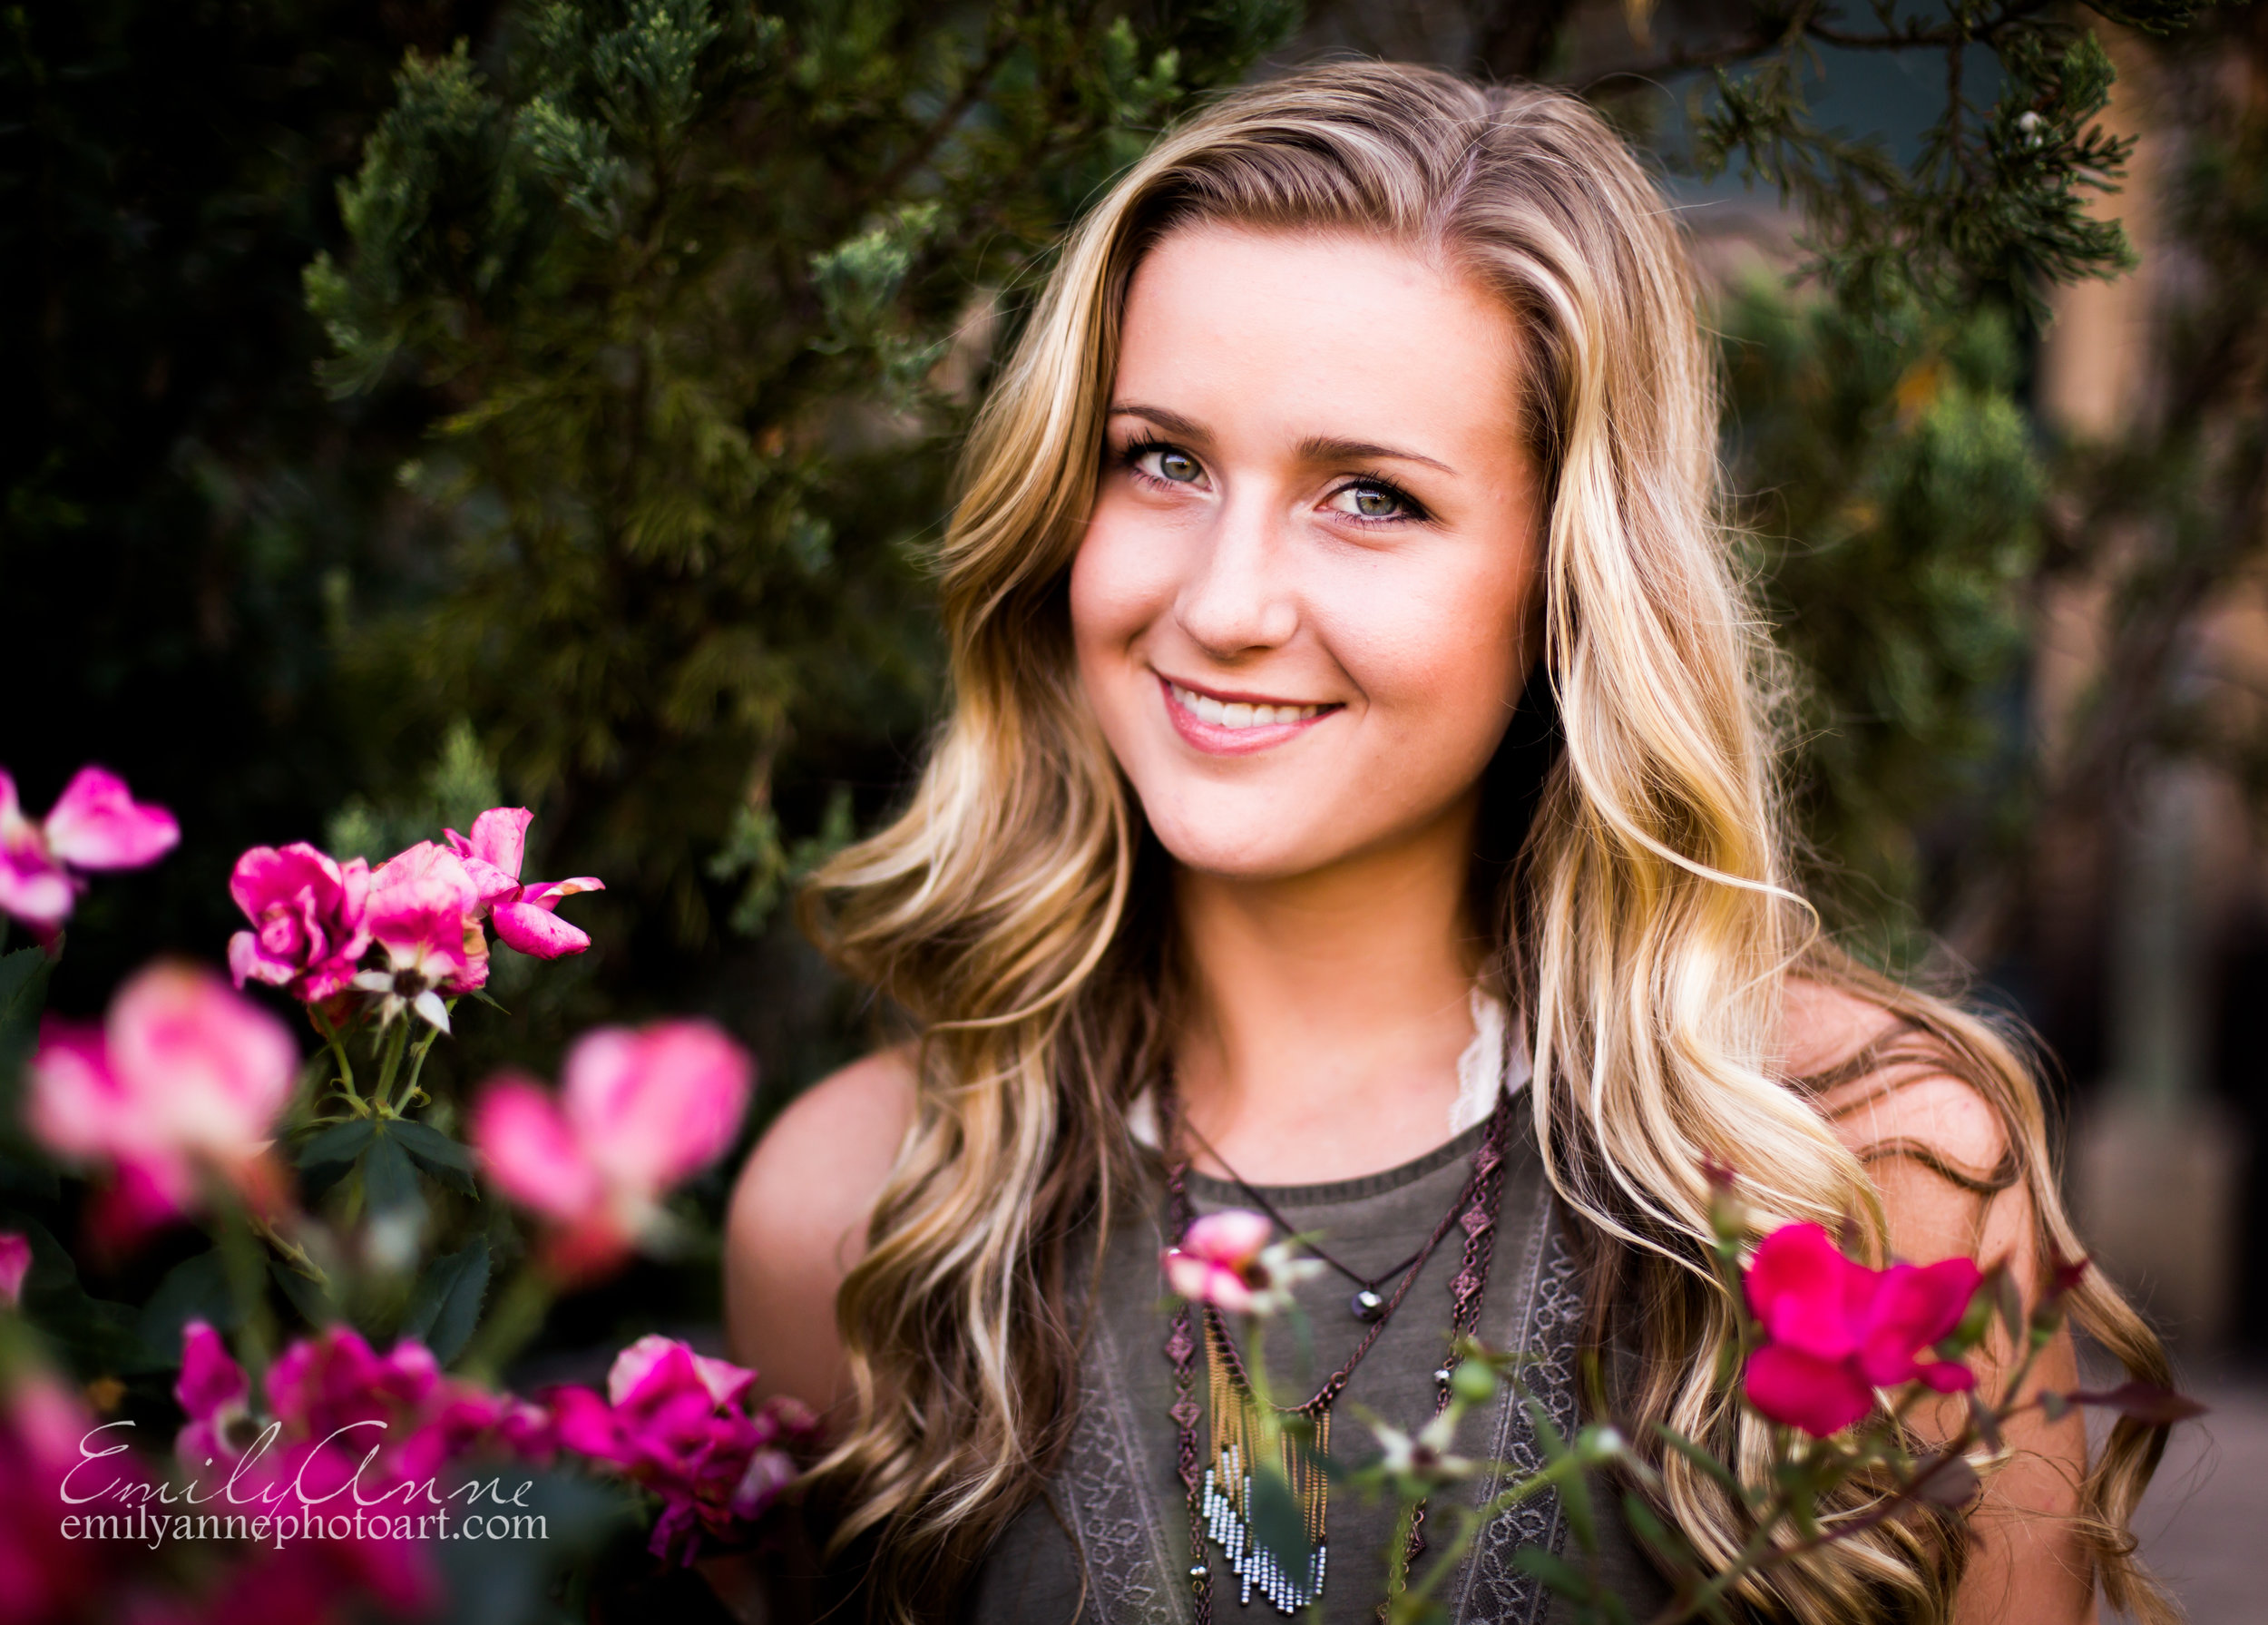 best senior portrait photographer in nashville, brentwood and franklin tn - professional high quality photographer emily anne photography